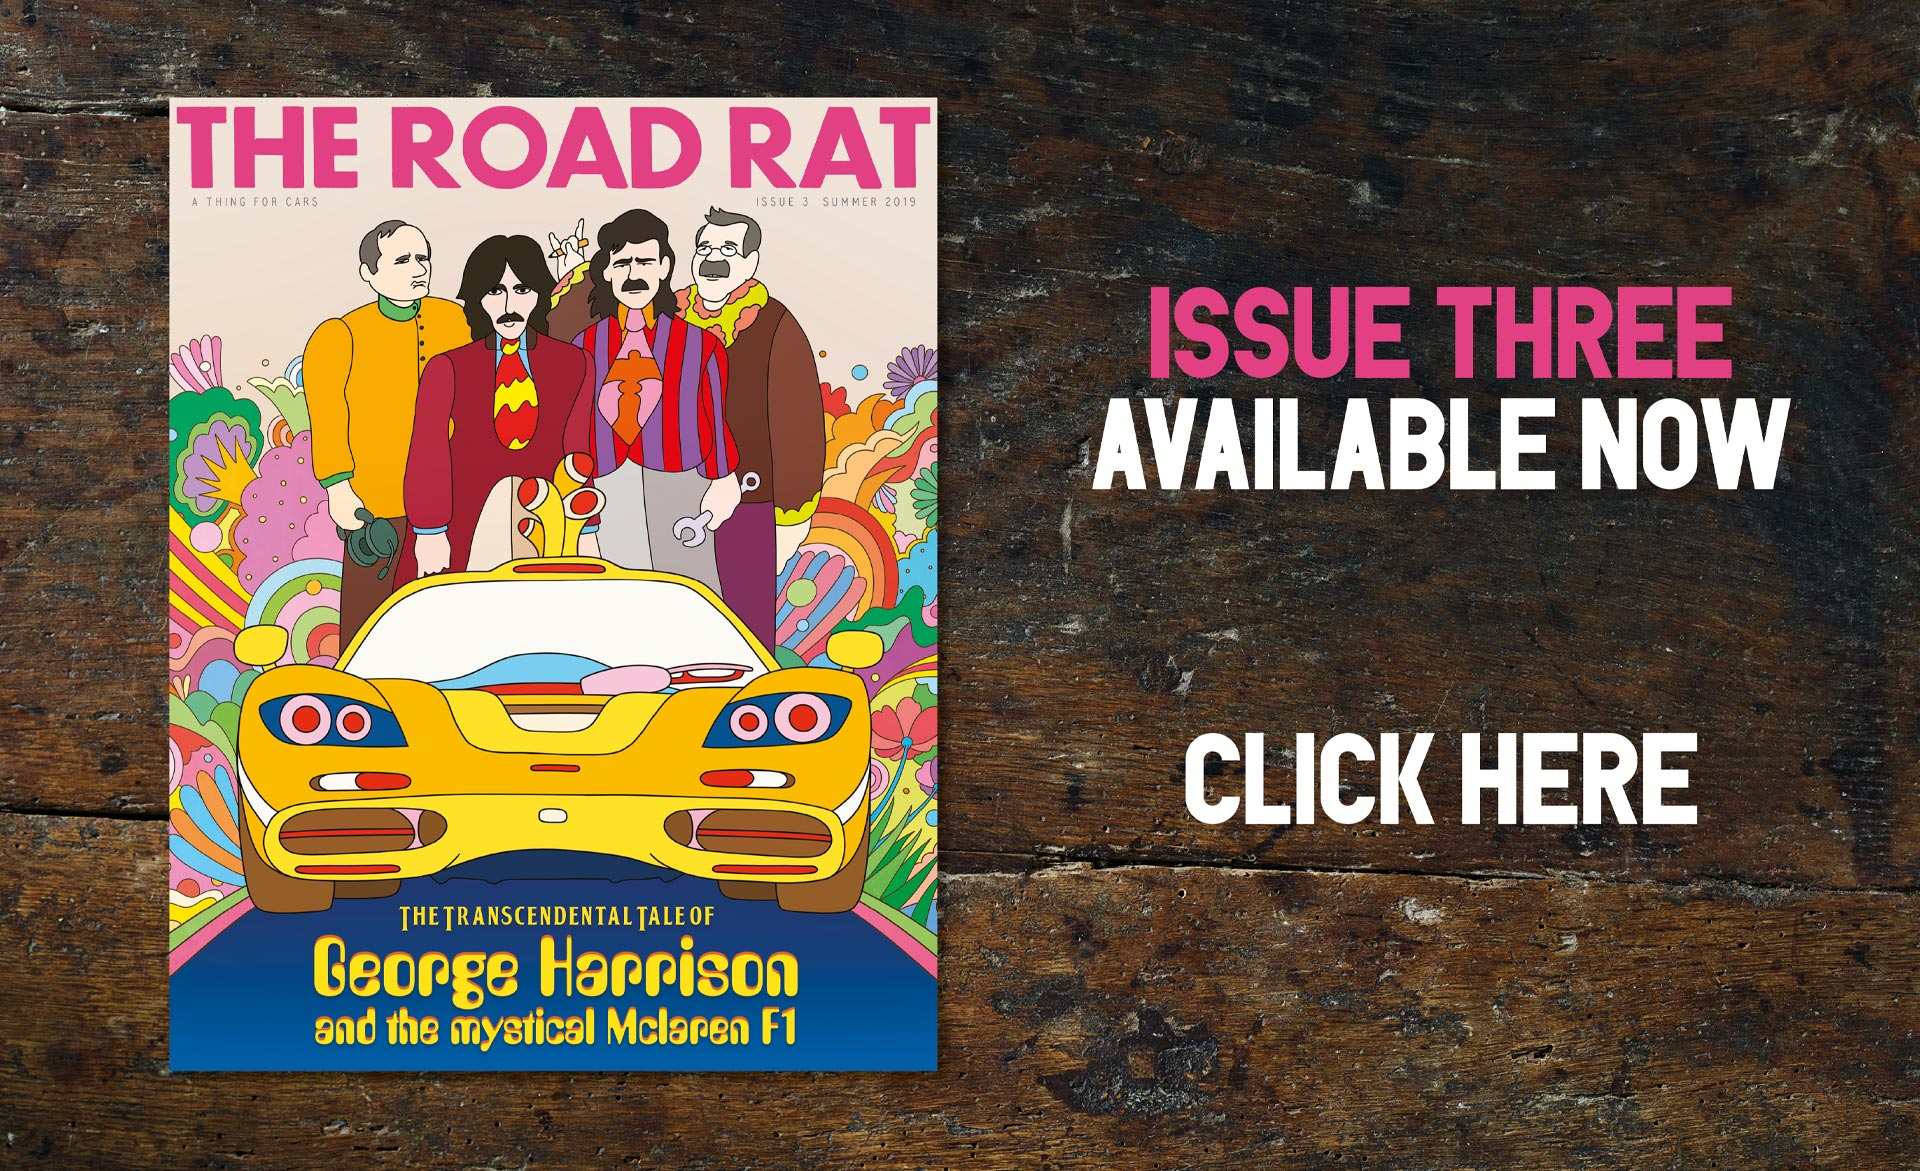 The Road Rat Magazine | A Thing For Cars